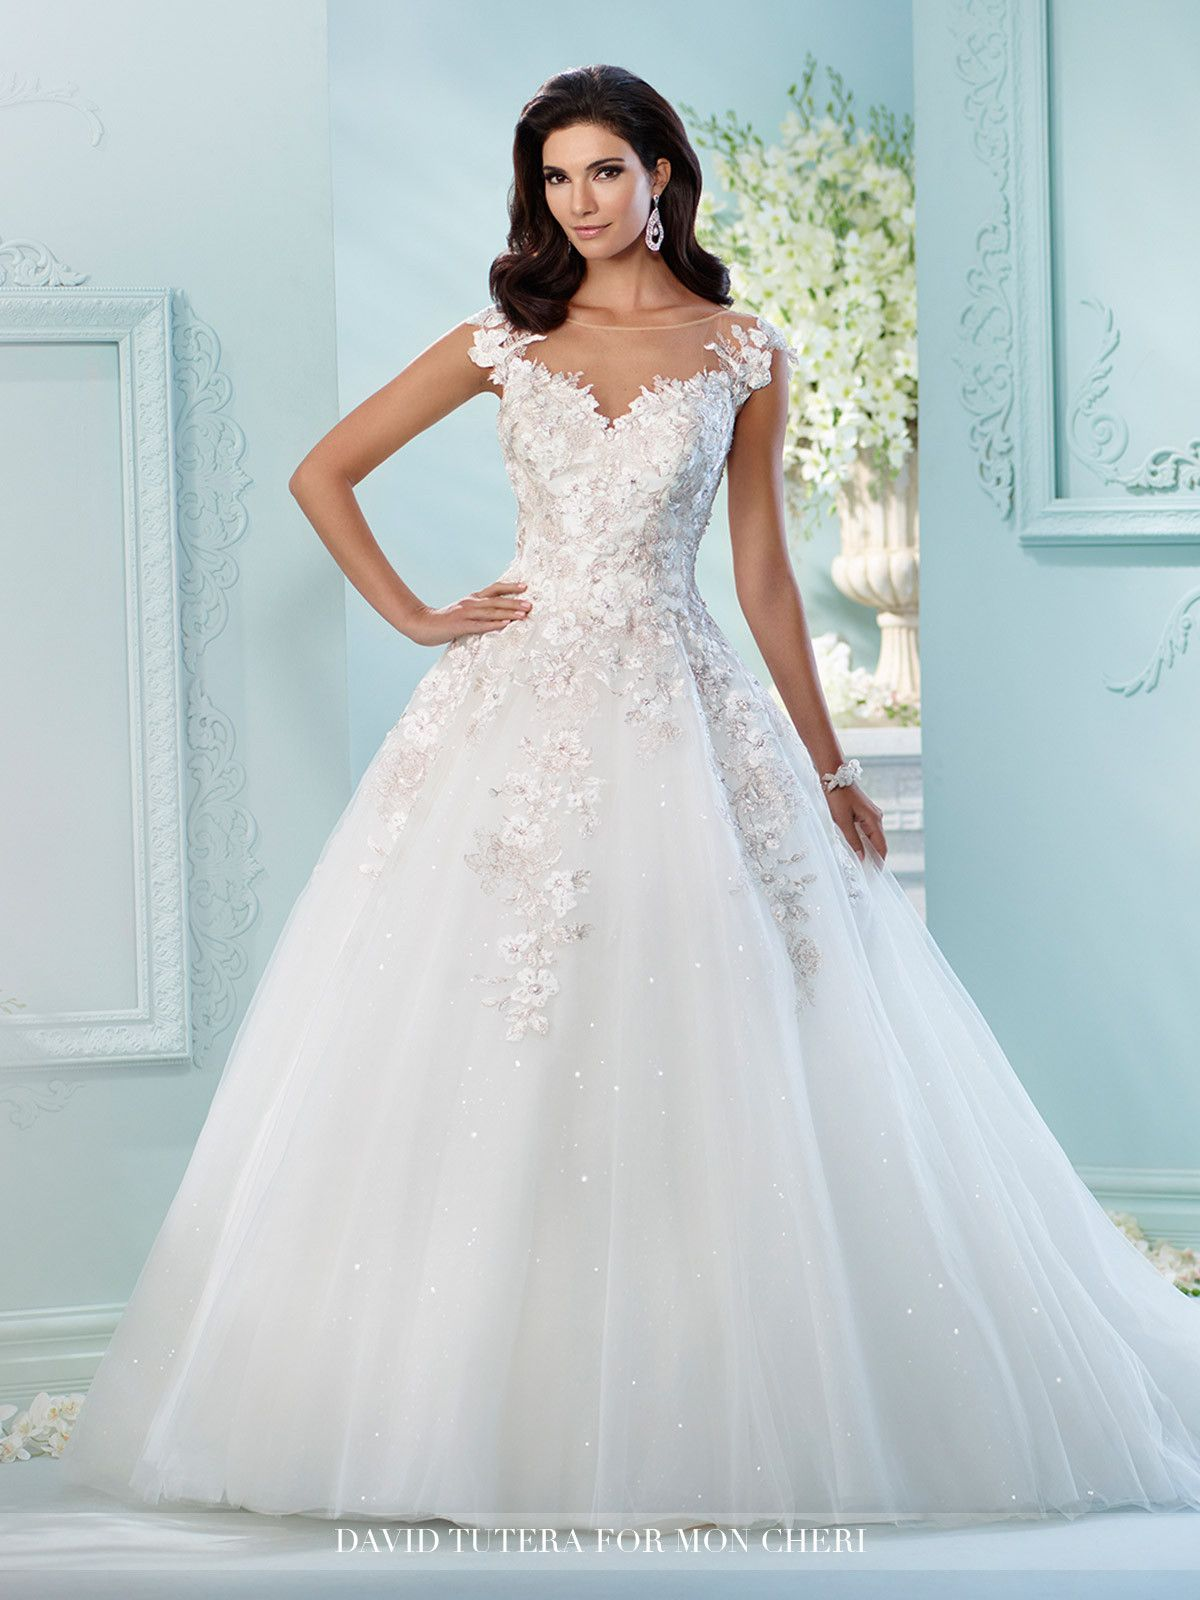 David Tutera - Jay - 216238 - All Dressed Up, Bridal Gown | David ...